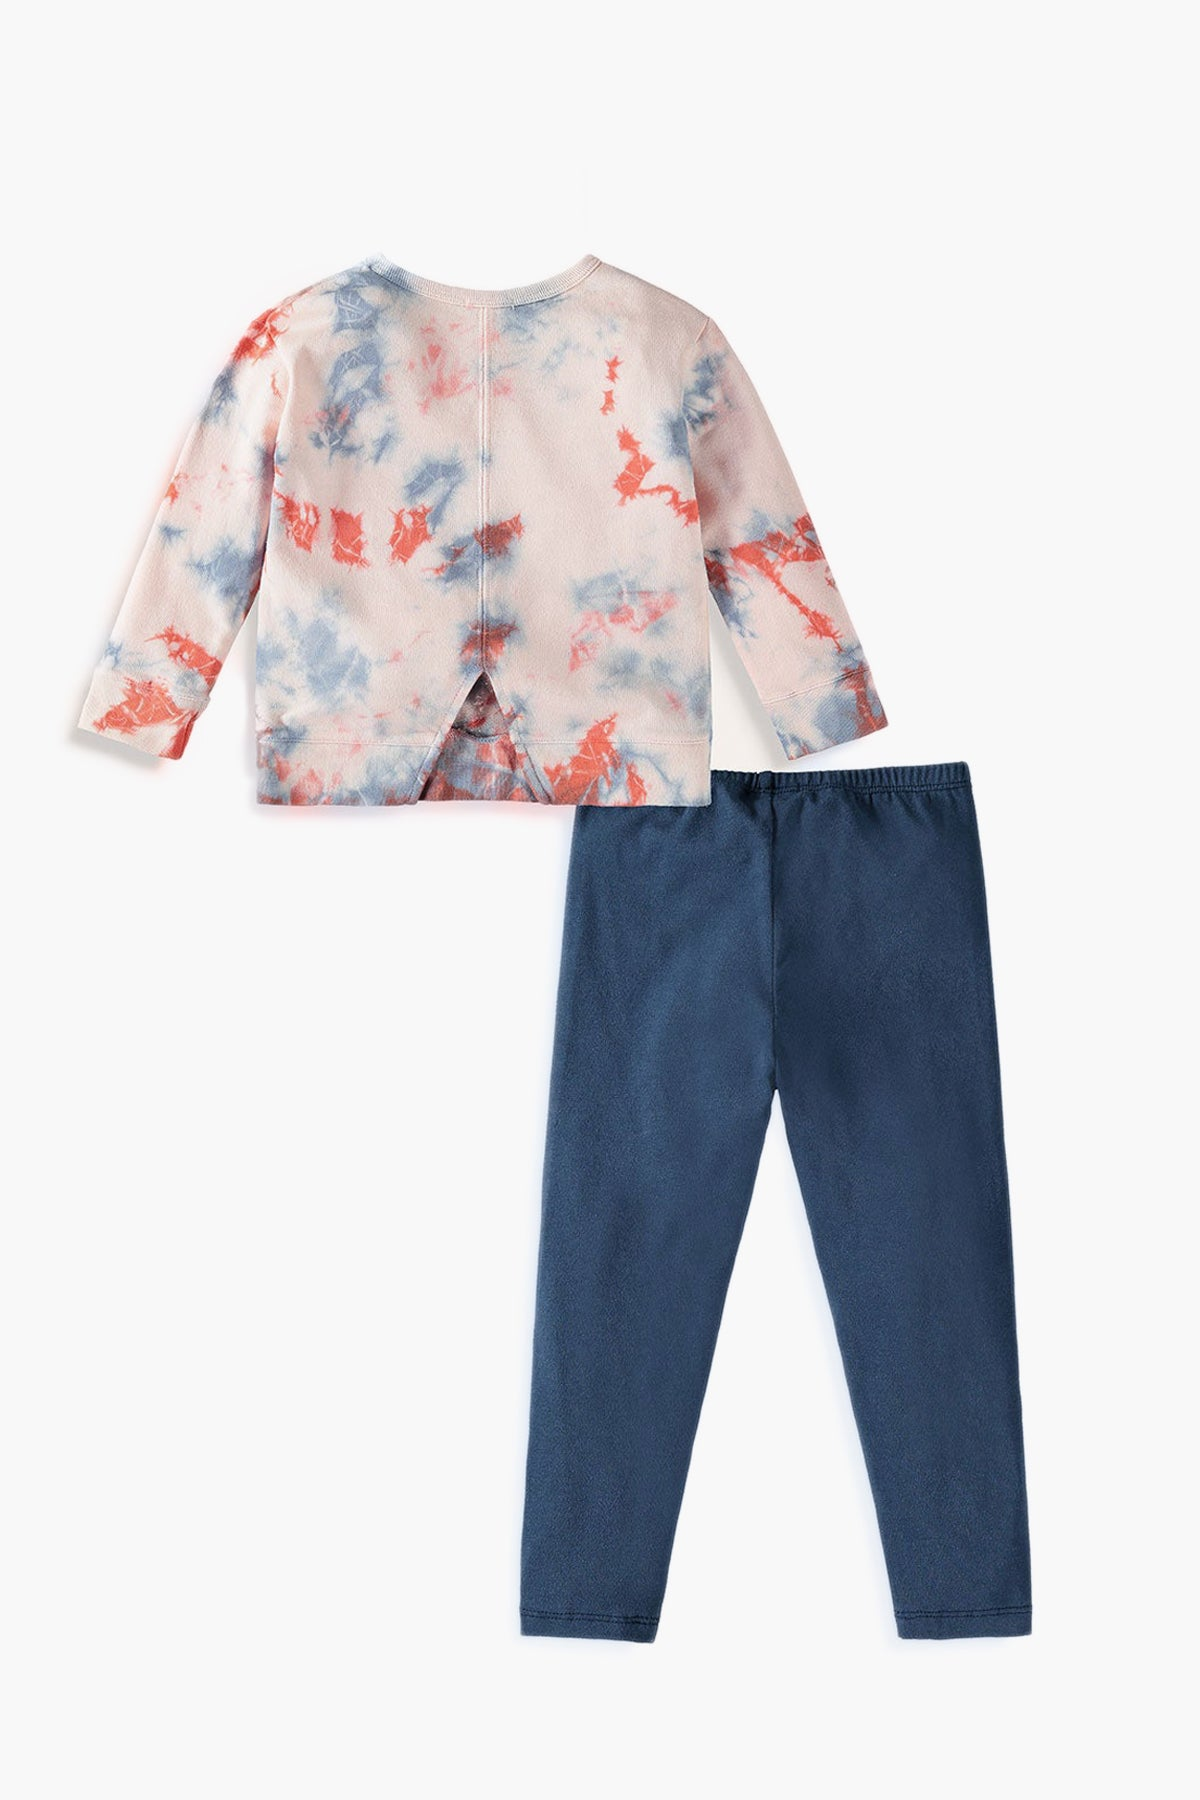 Splendid Indigo Tie Dye Girls 2-Piece Set